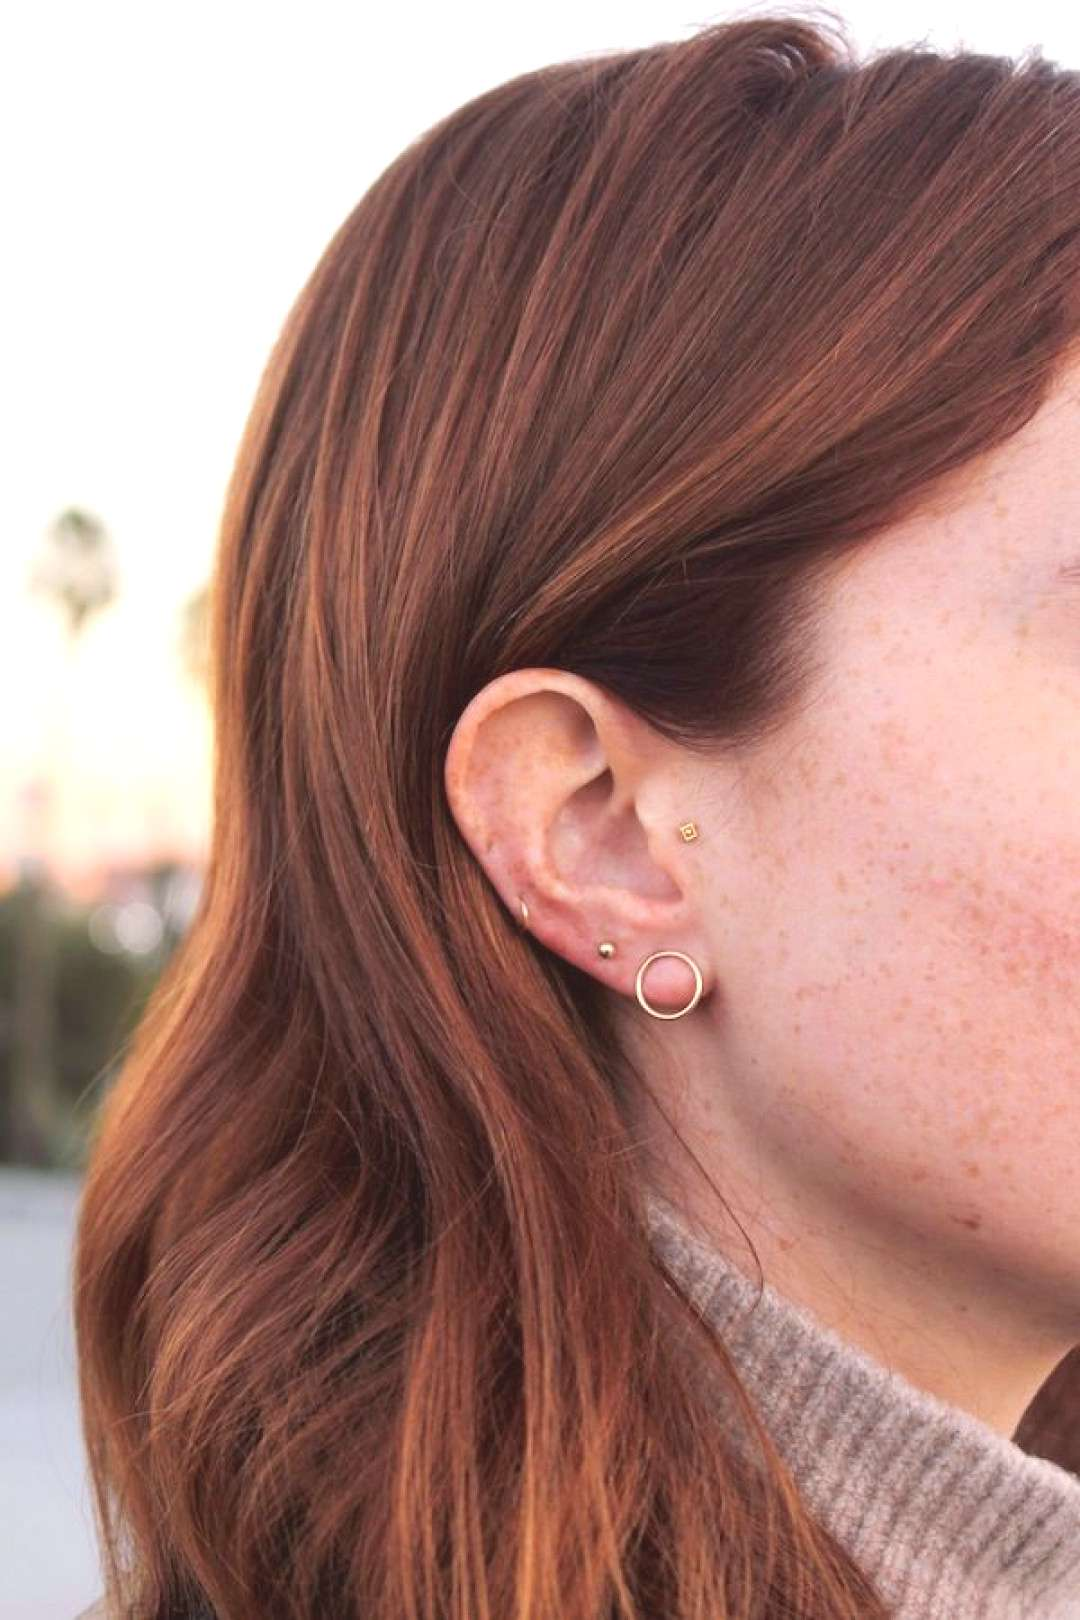 Style Tweak: Minimal Multiple Earrings -  When I was about three, my dad took me to pierce my ears